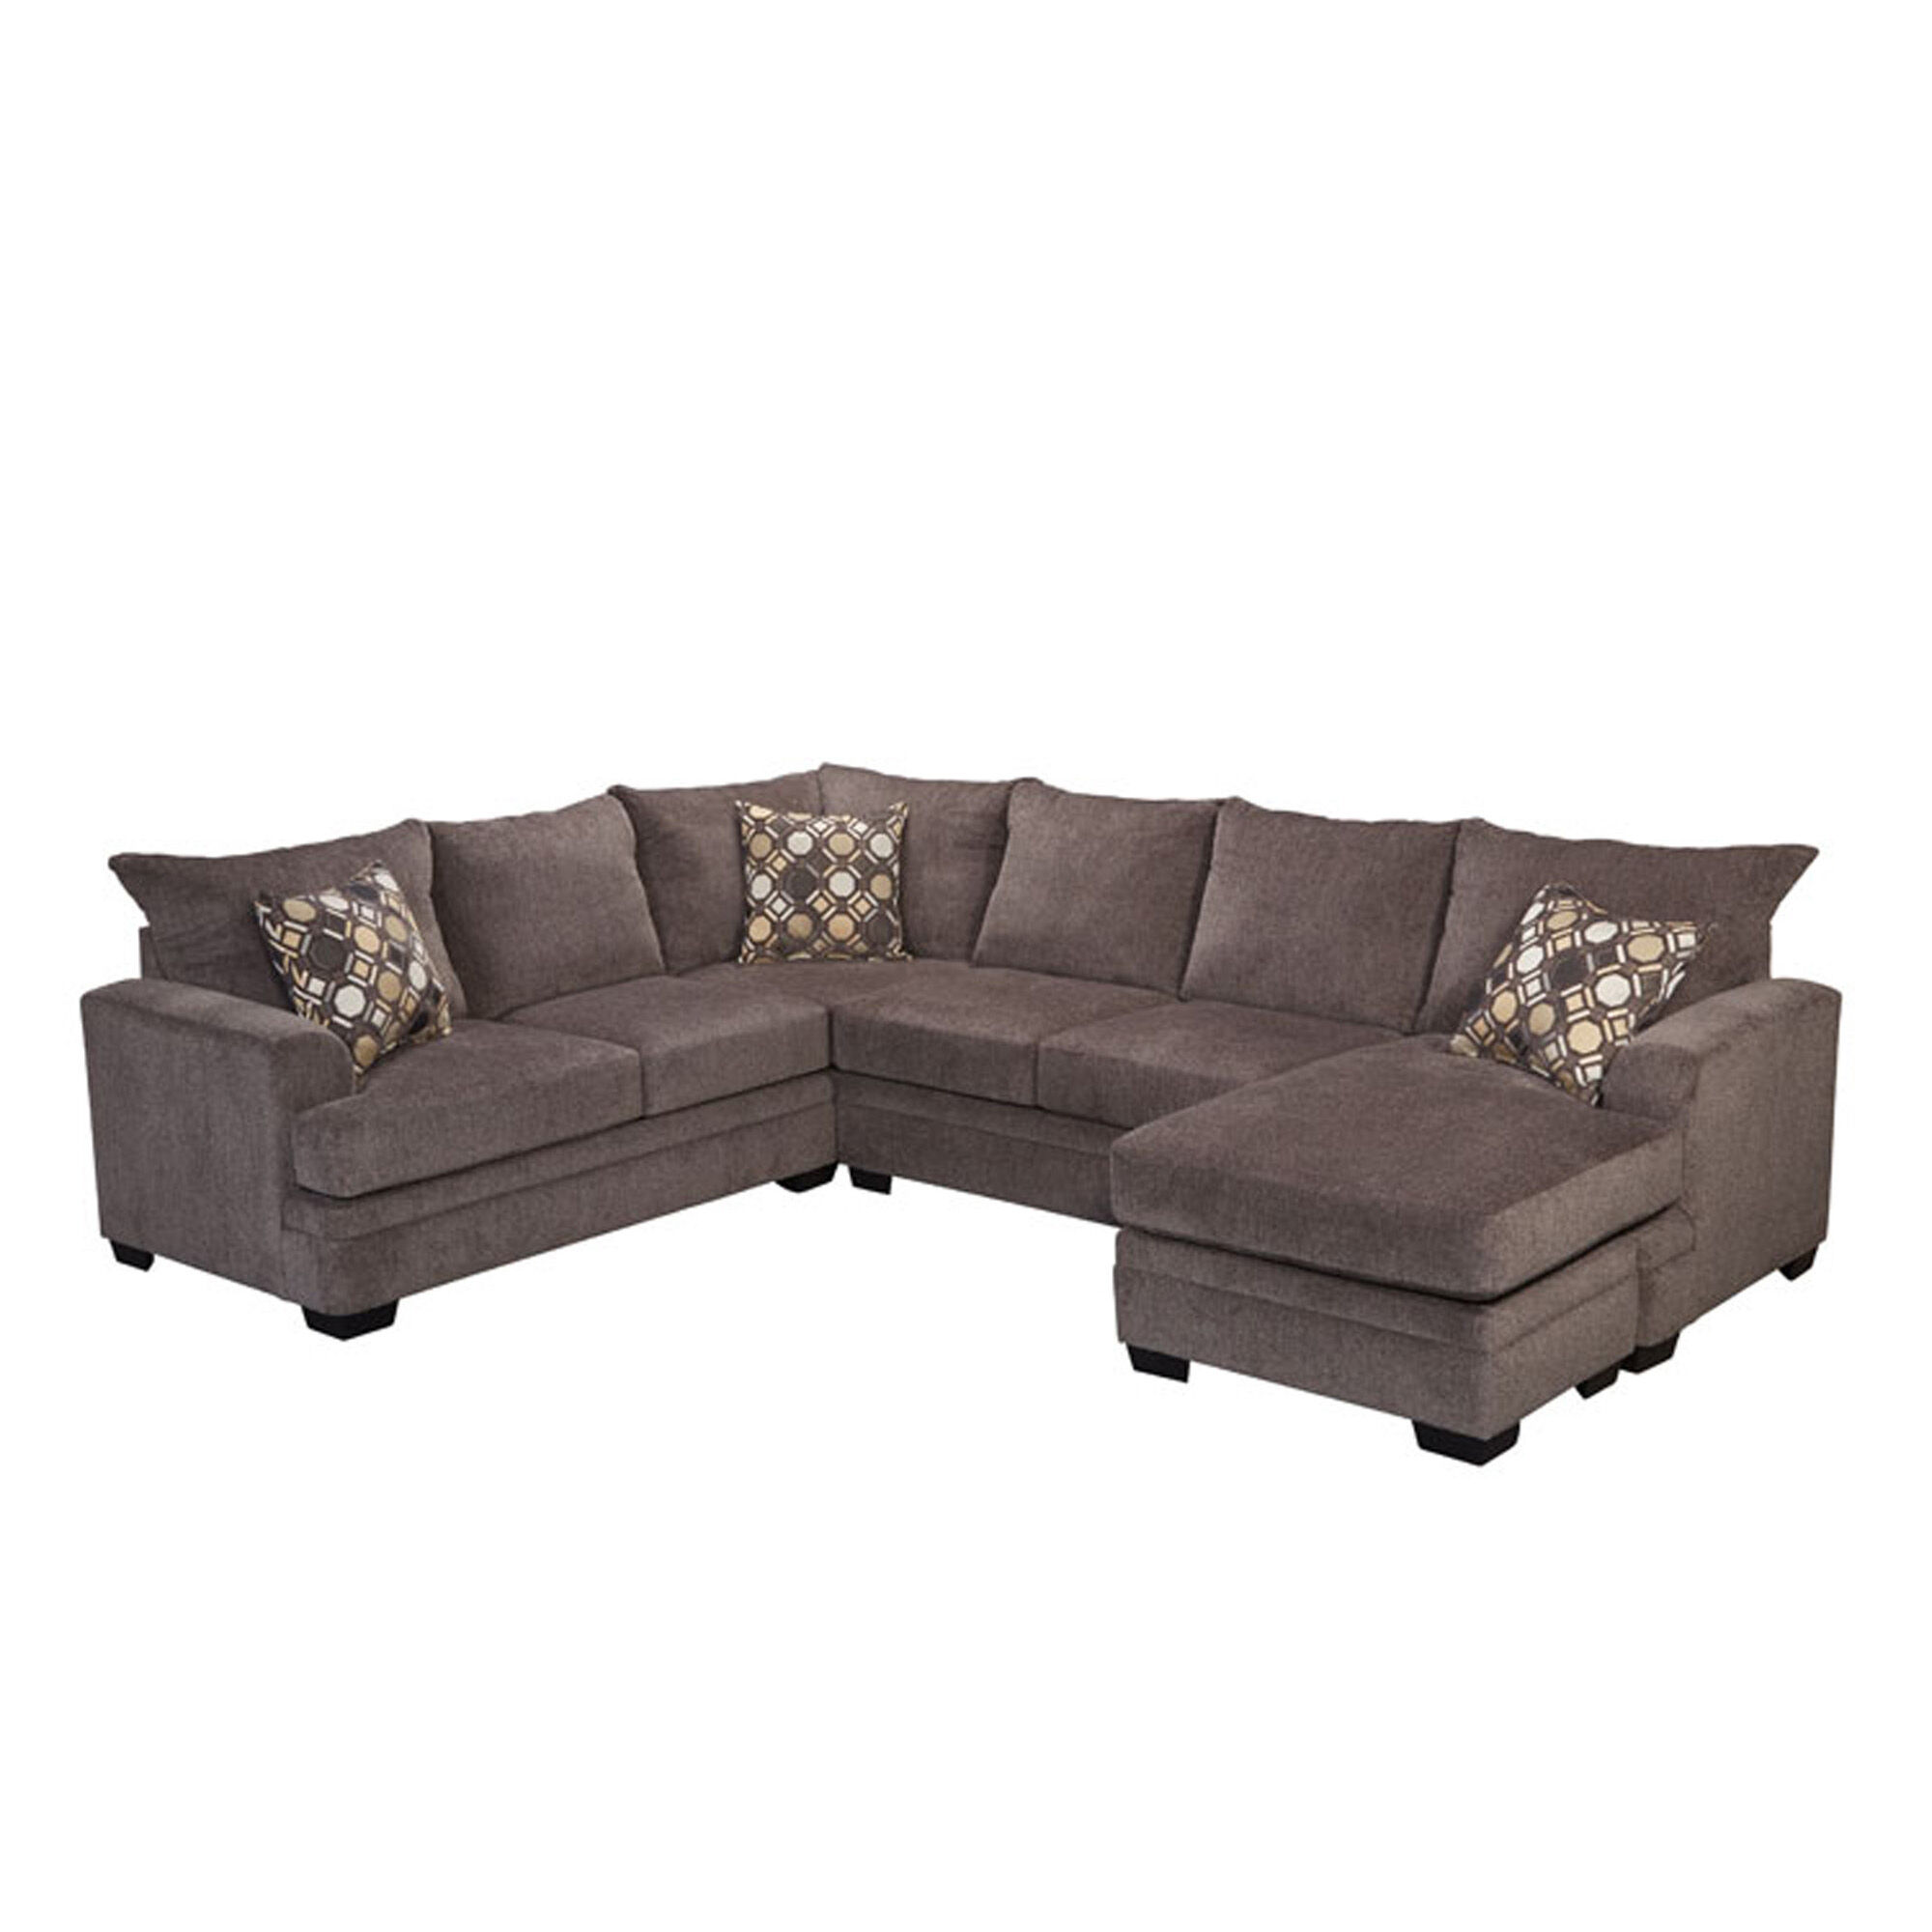 Big Couch Small Door 2 Piece Kimberly Sectional Living Room Collection